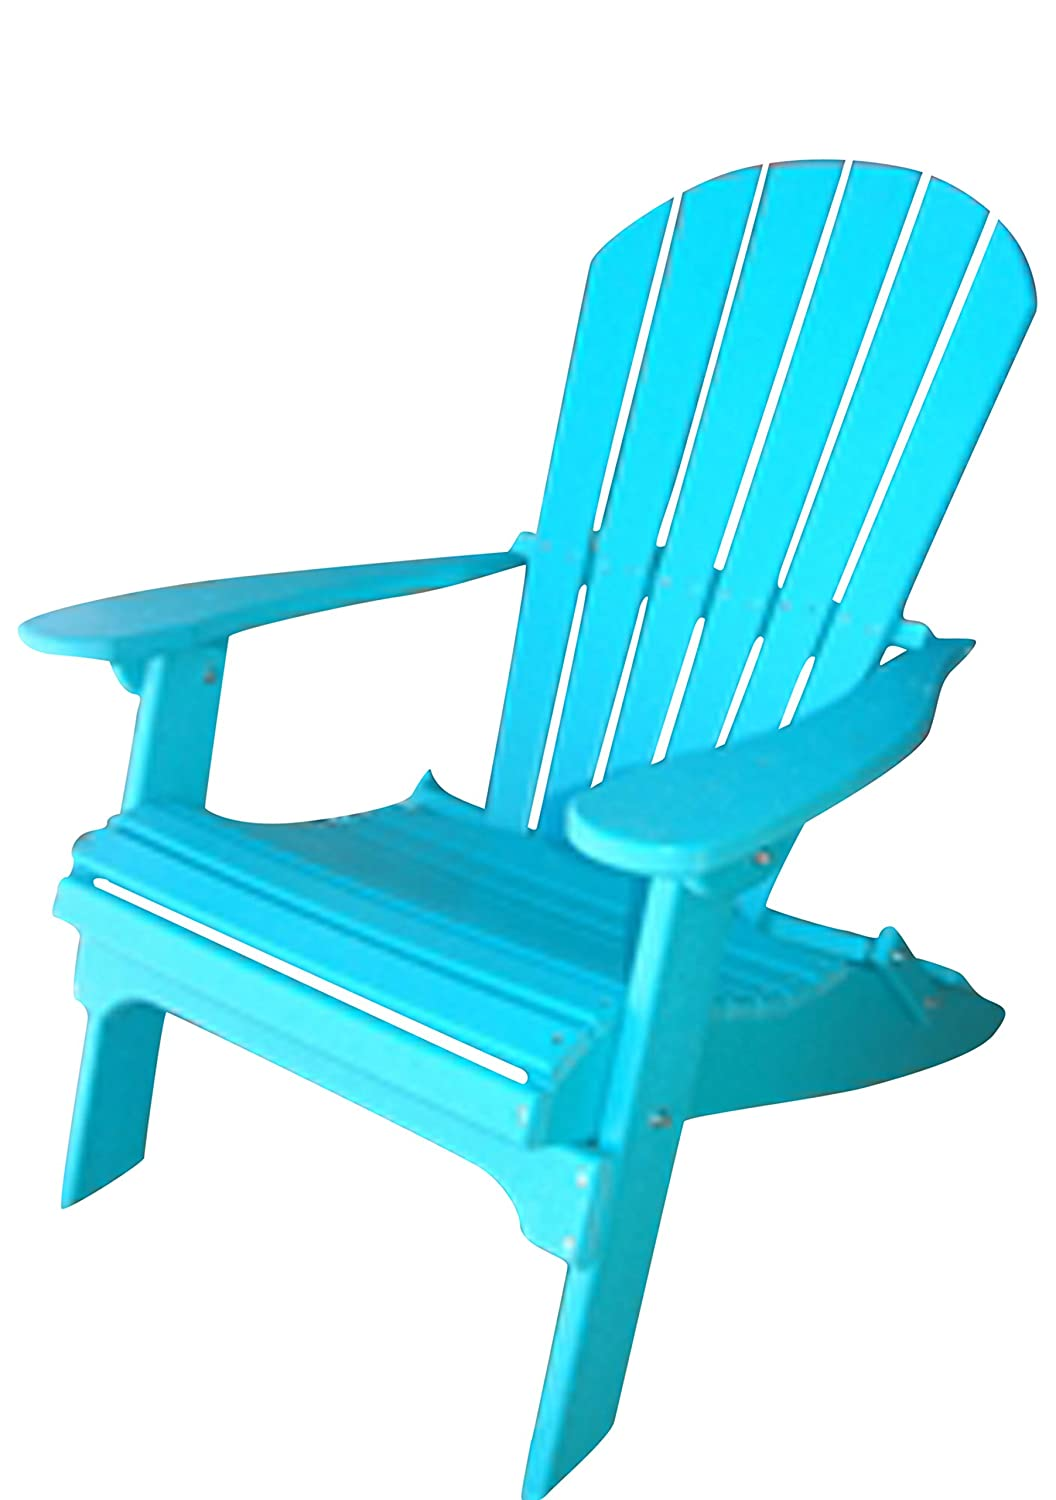 Amazon.com : Phat Tommy Recycled Poly Resin Folding Adirondack Chair    Durable And Eco Friendly Patio Furniture Armchair, Teal : Garden U0026 Outdoor